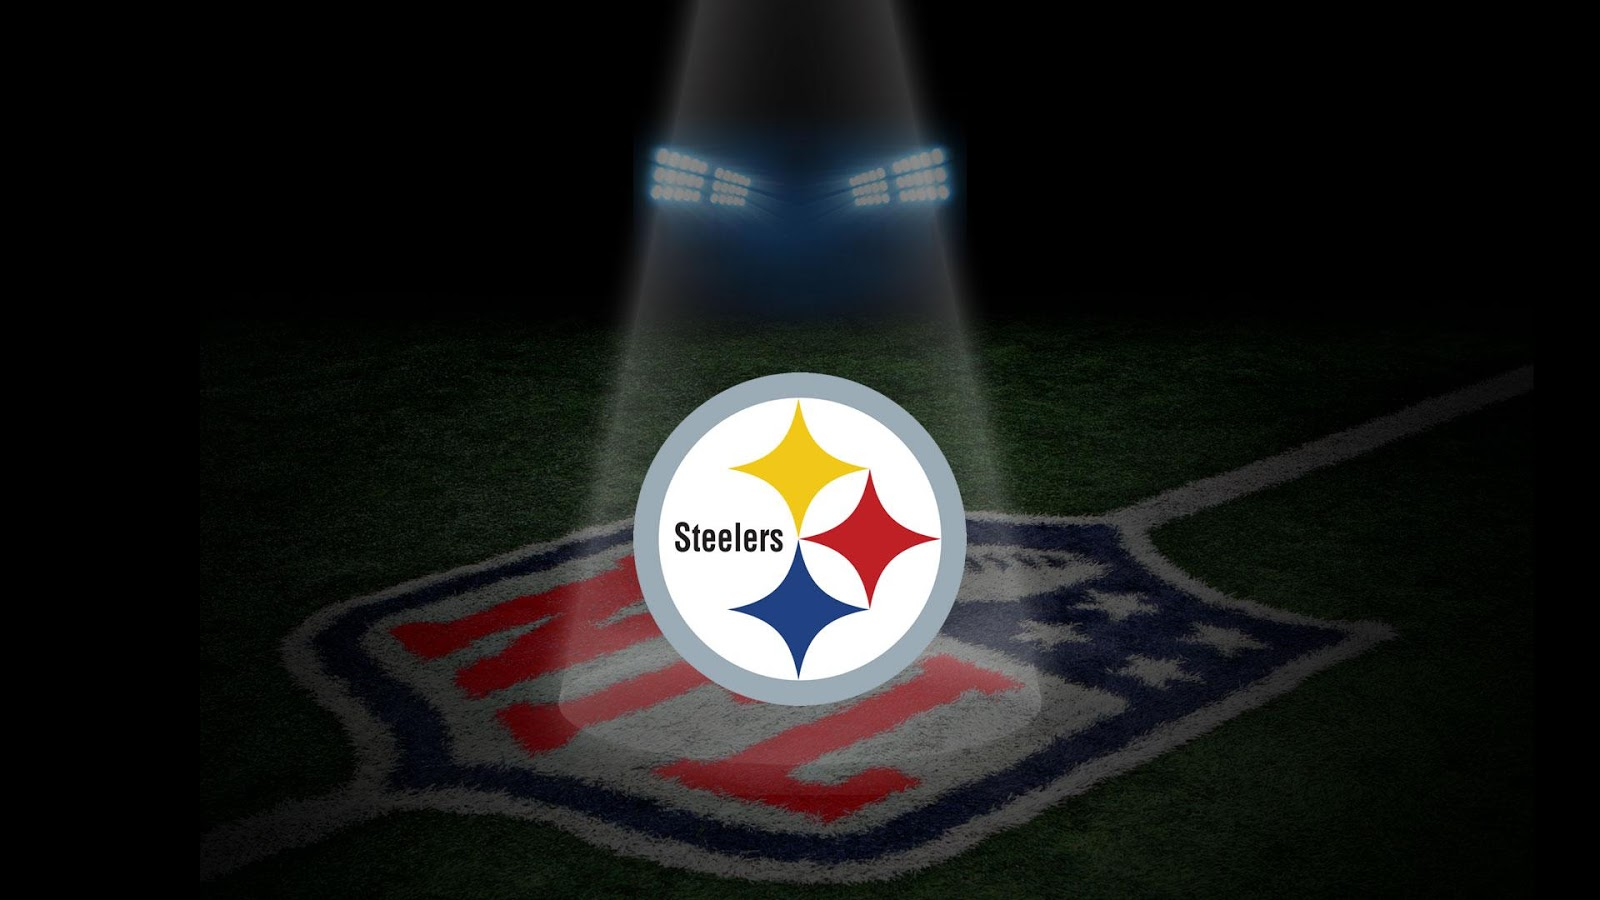 Pittsburgh Steelers Wallpaper 10 screenshot 2 1600x900